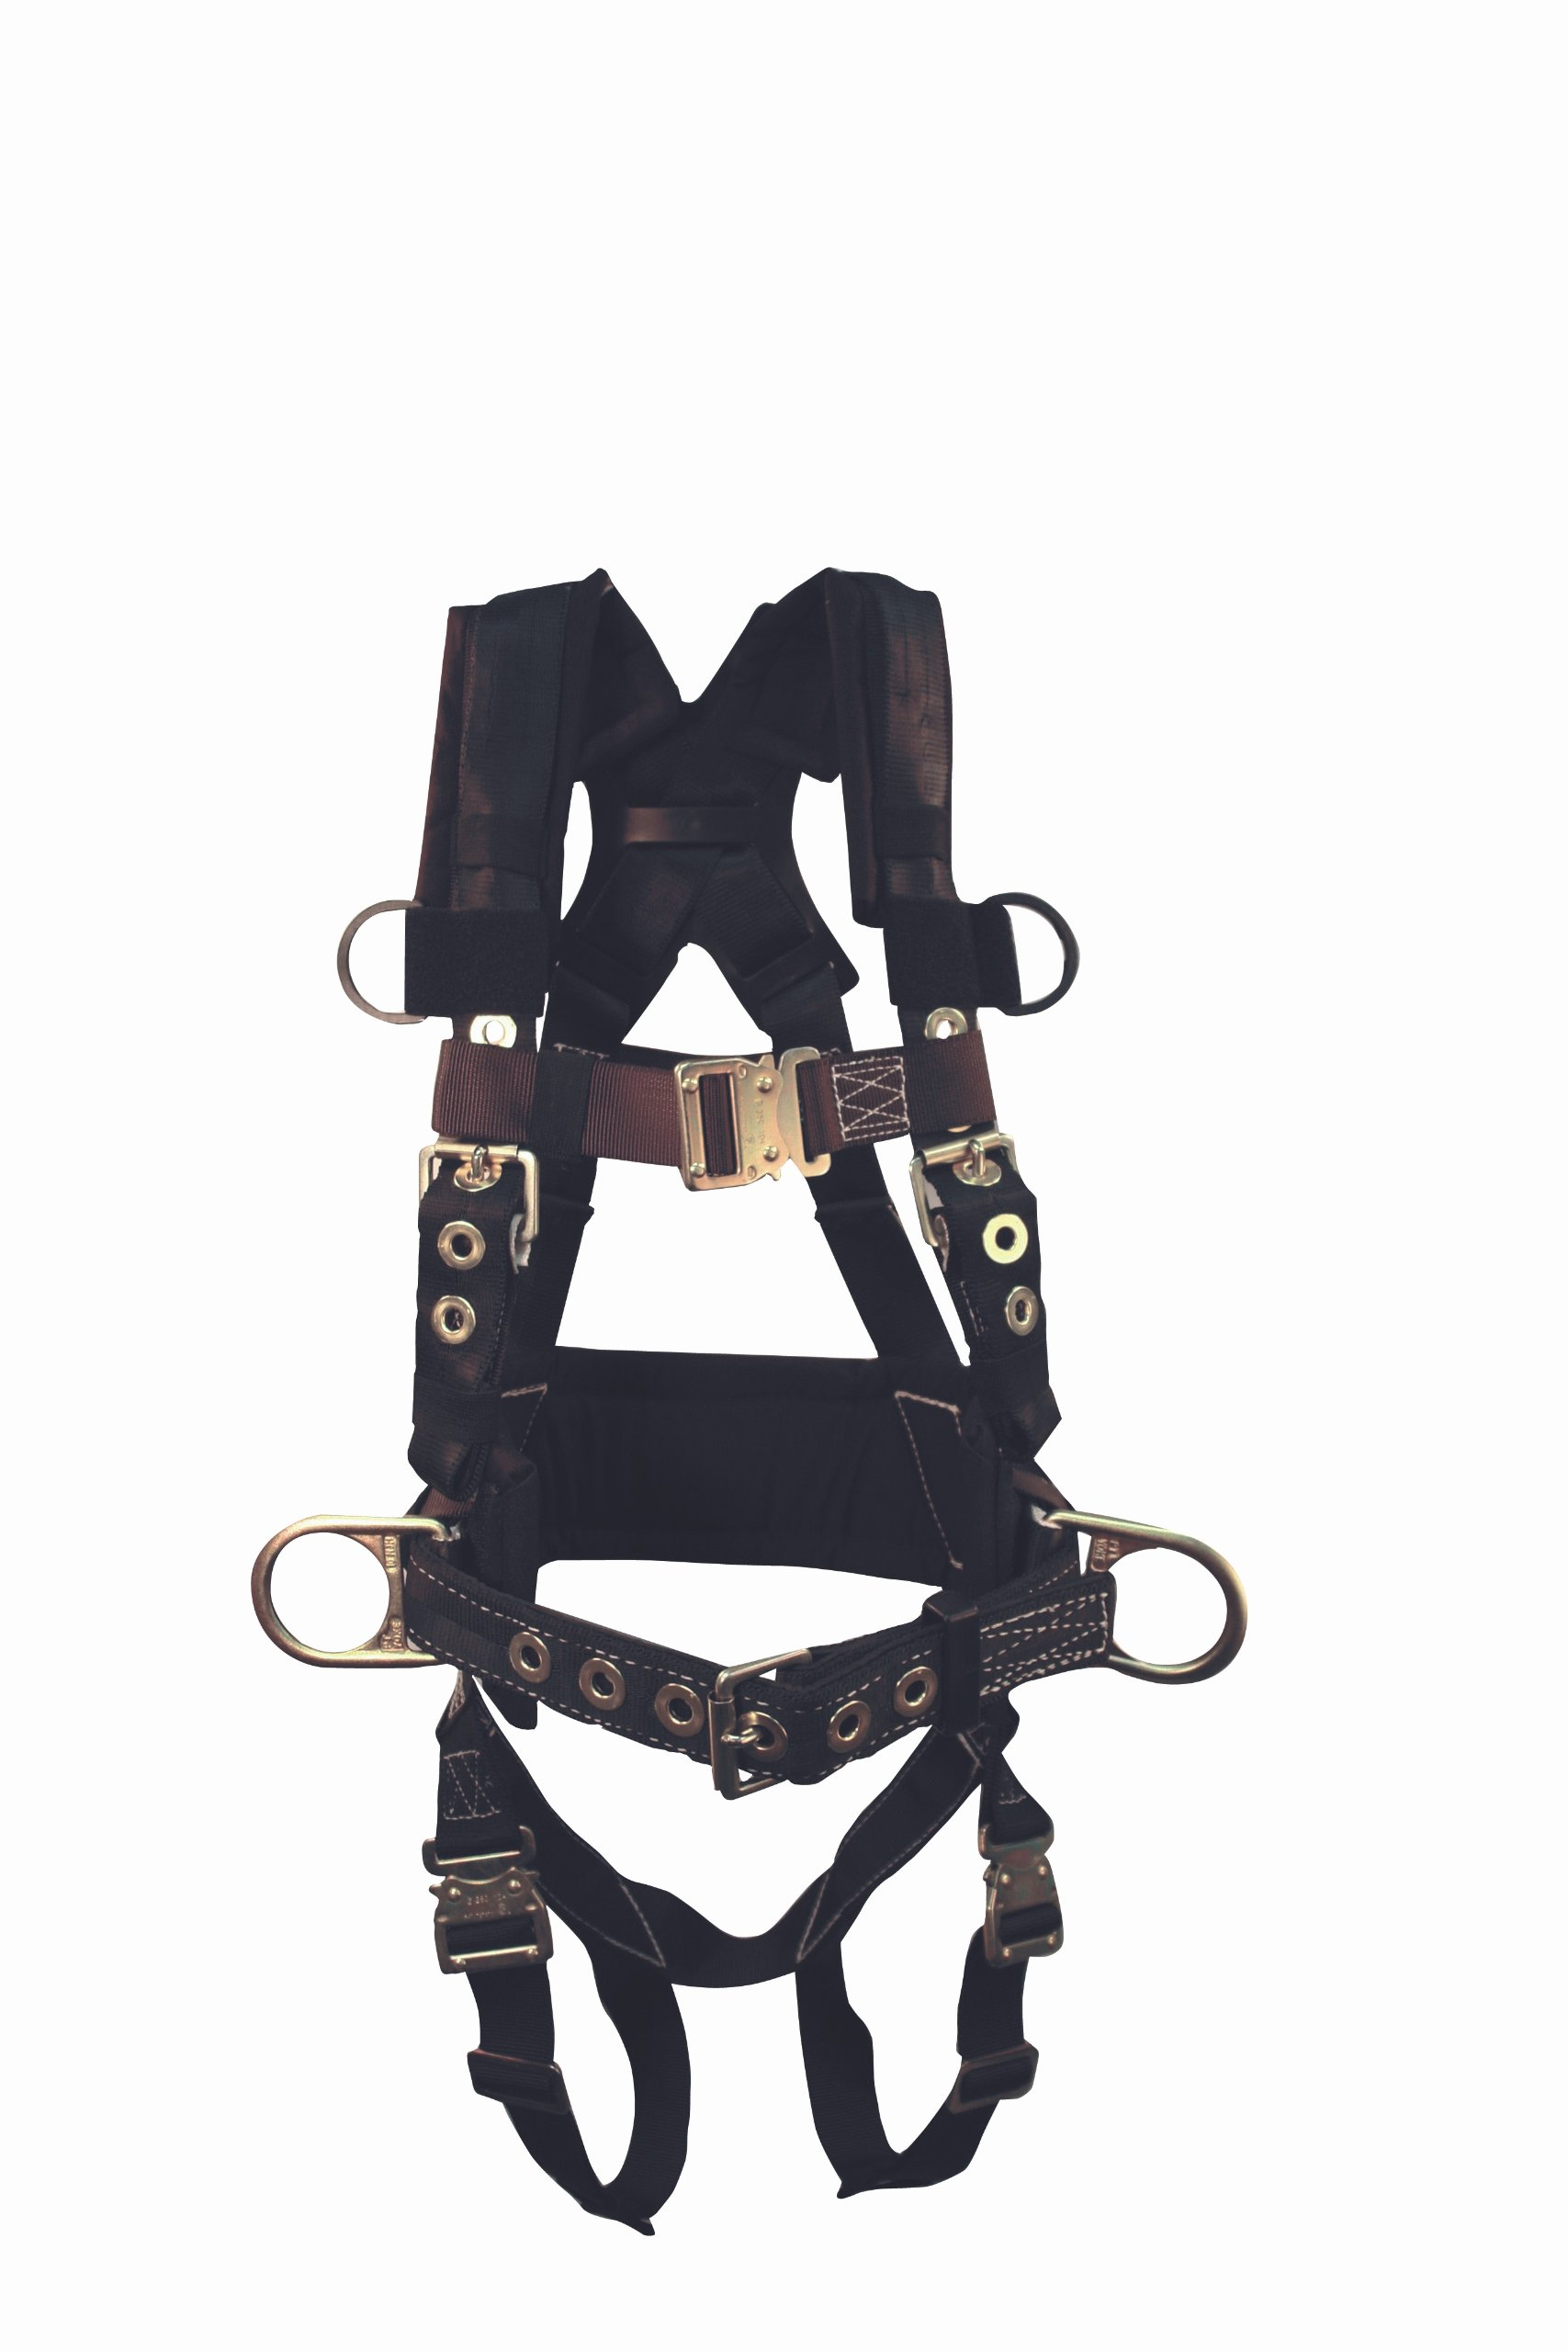 Elk River 97103 Onyx Platinum Series Polyester/Nylon 3 D-rings Harness with Quick-Connect Buckles, Large